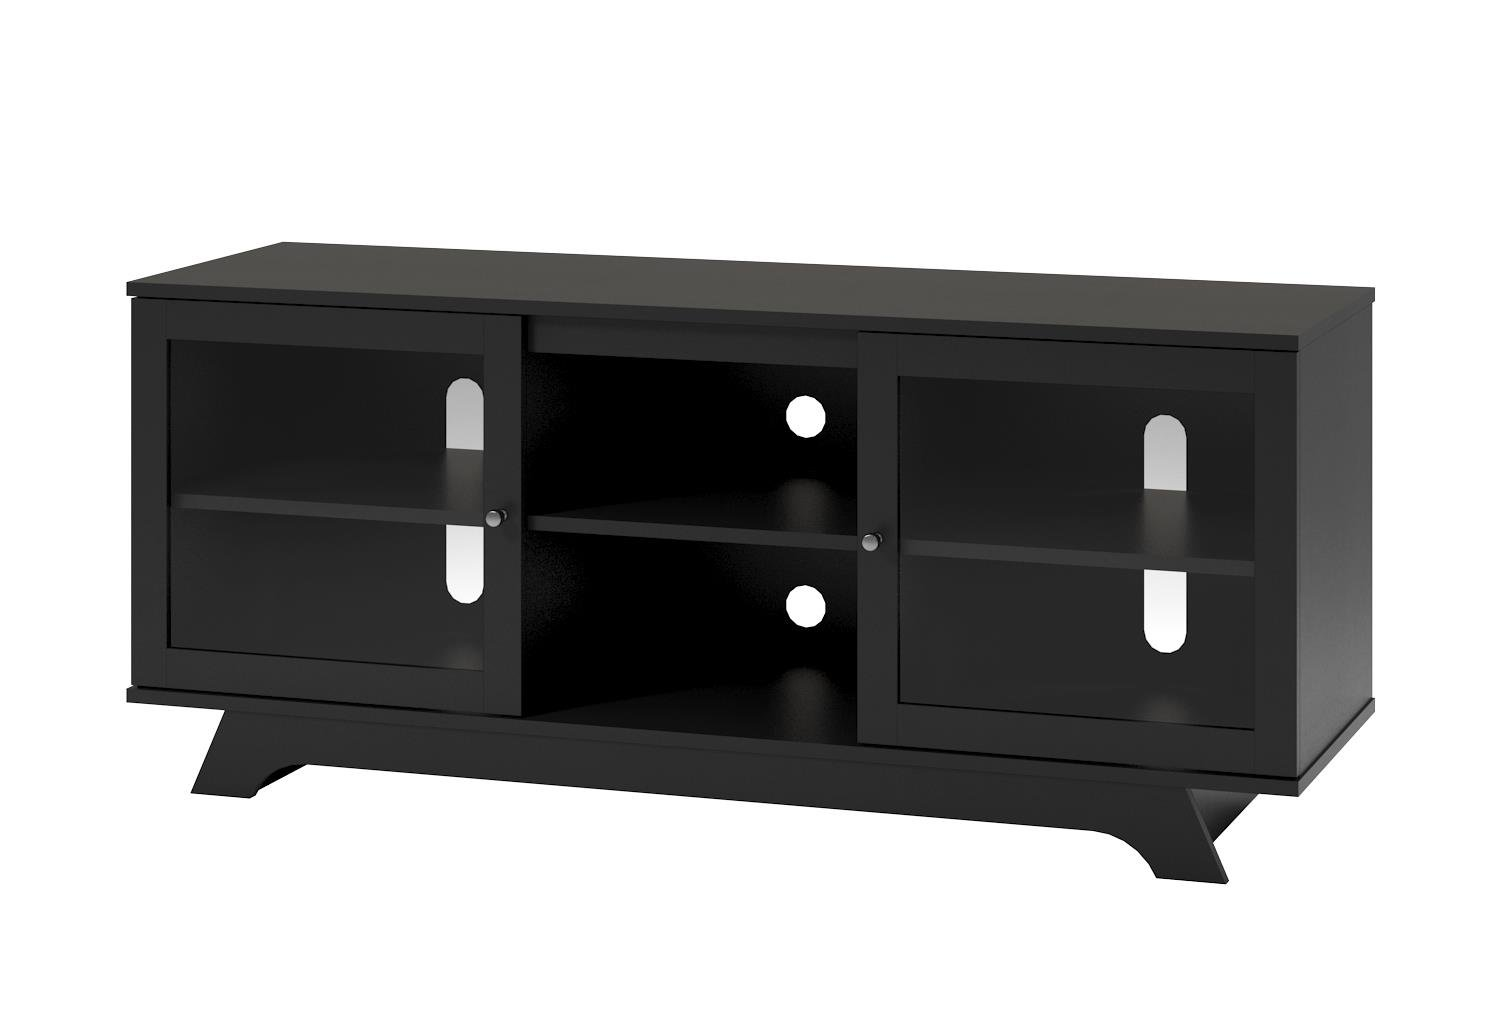 Ameriwood Home Englewood TV Stand for TVs up to 55'', Black by Ameriwood Home